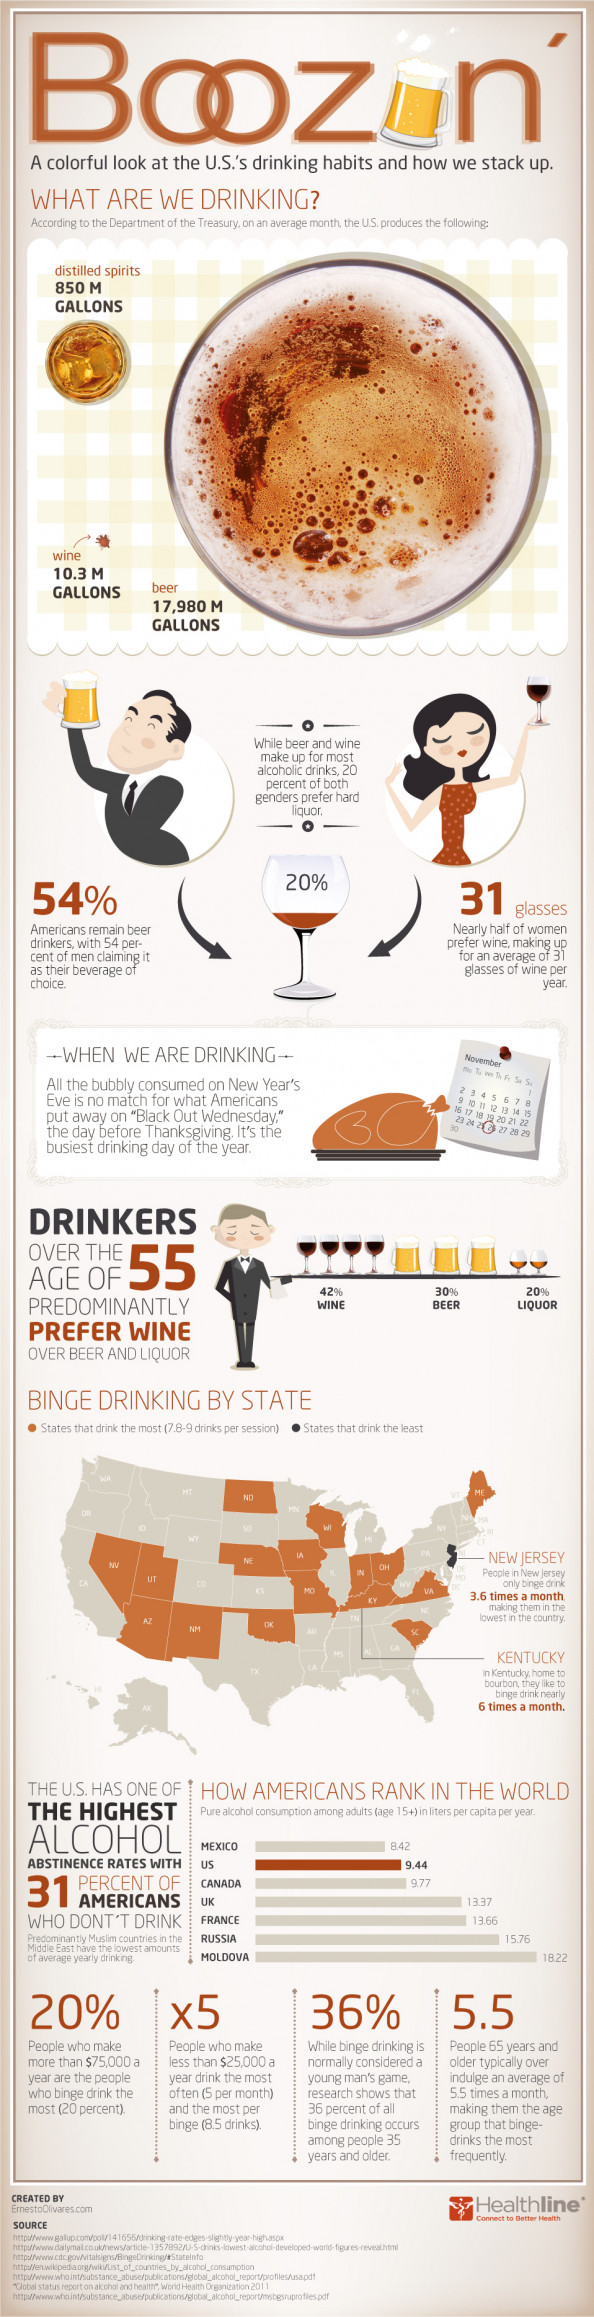 Booze is part of the American culture Infographic